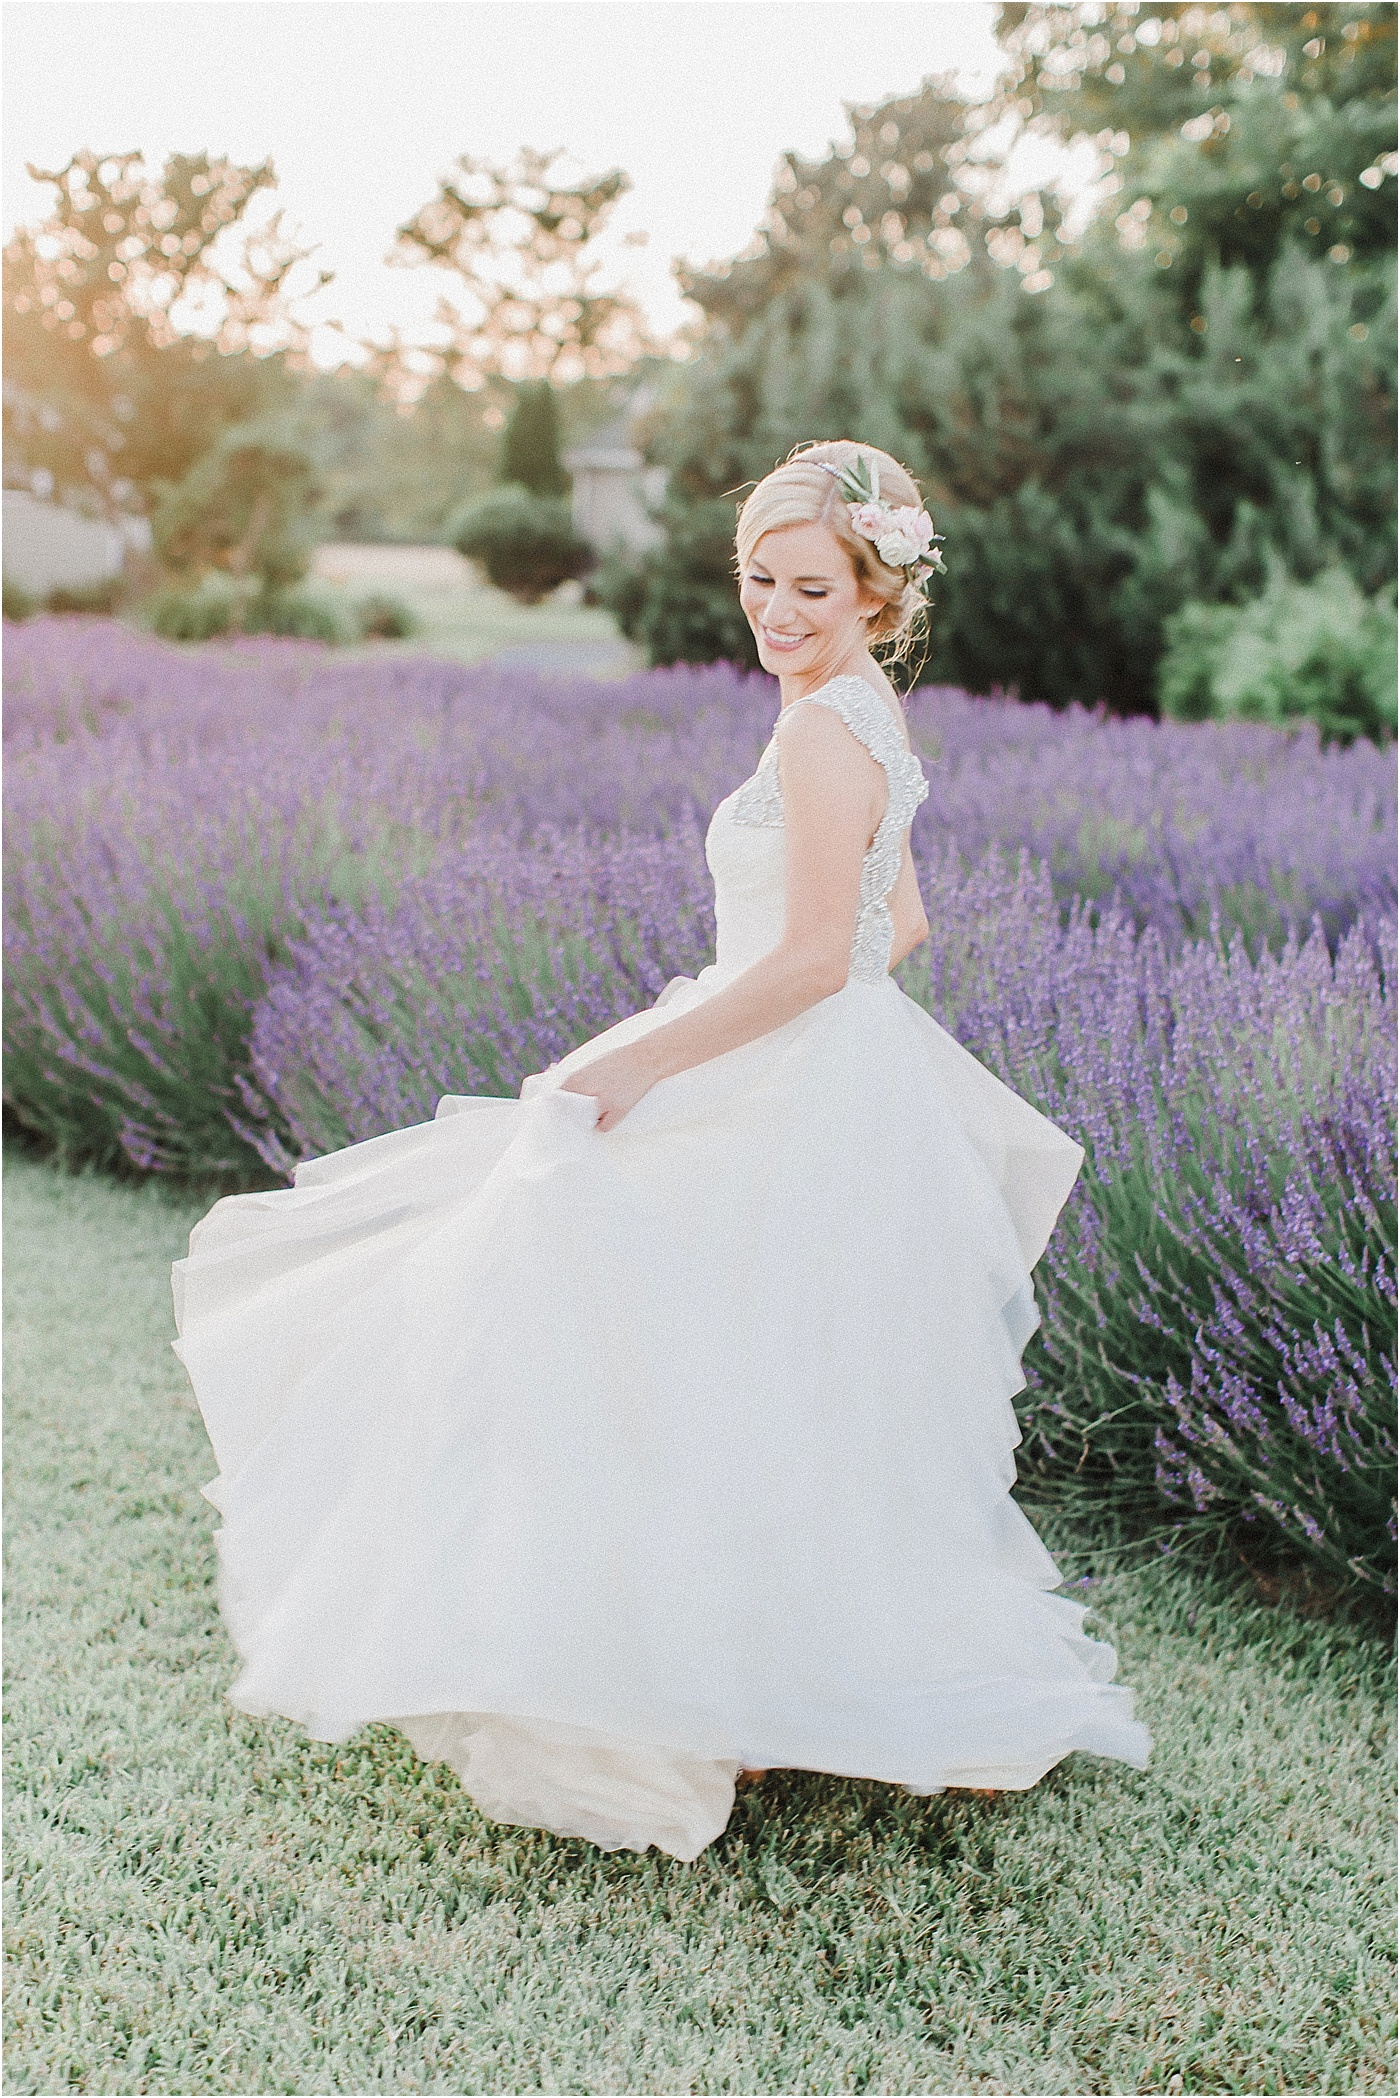 Lavender Field Bridal Photos + Hayley Paige Wedding Dress